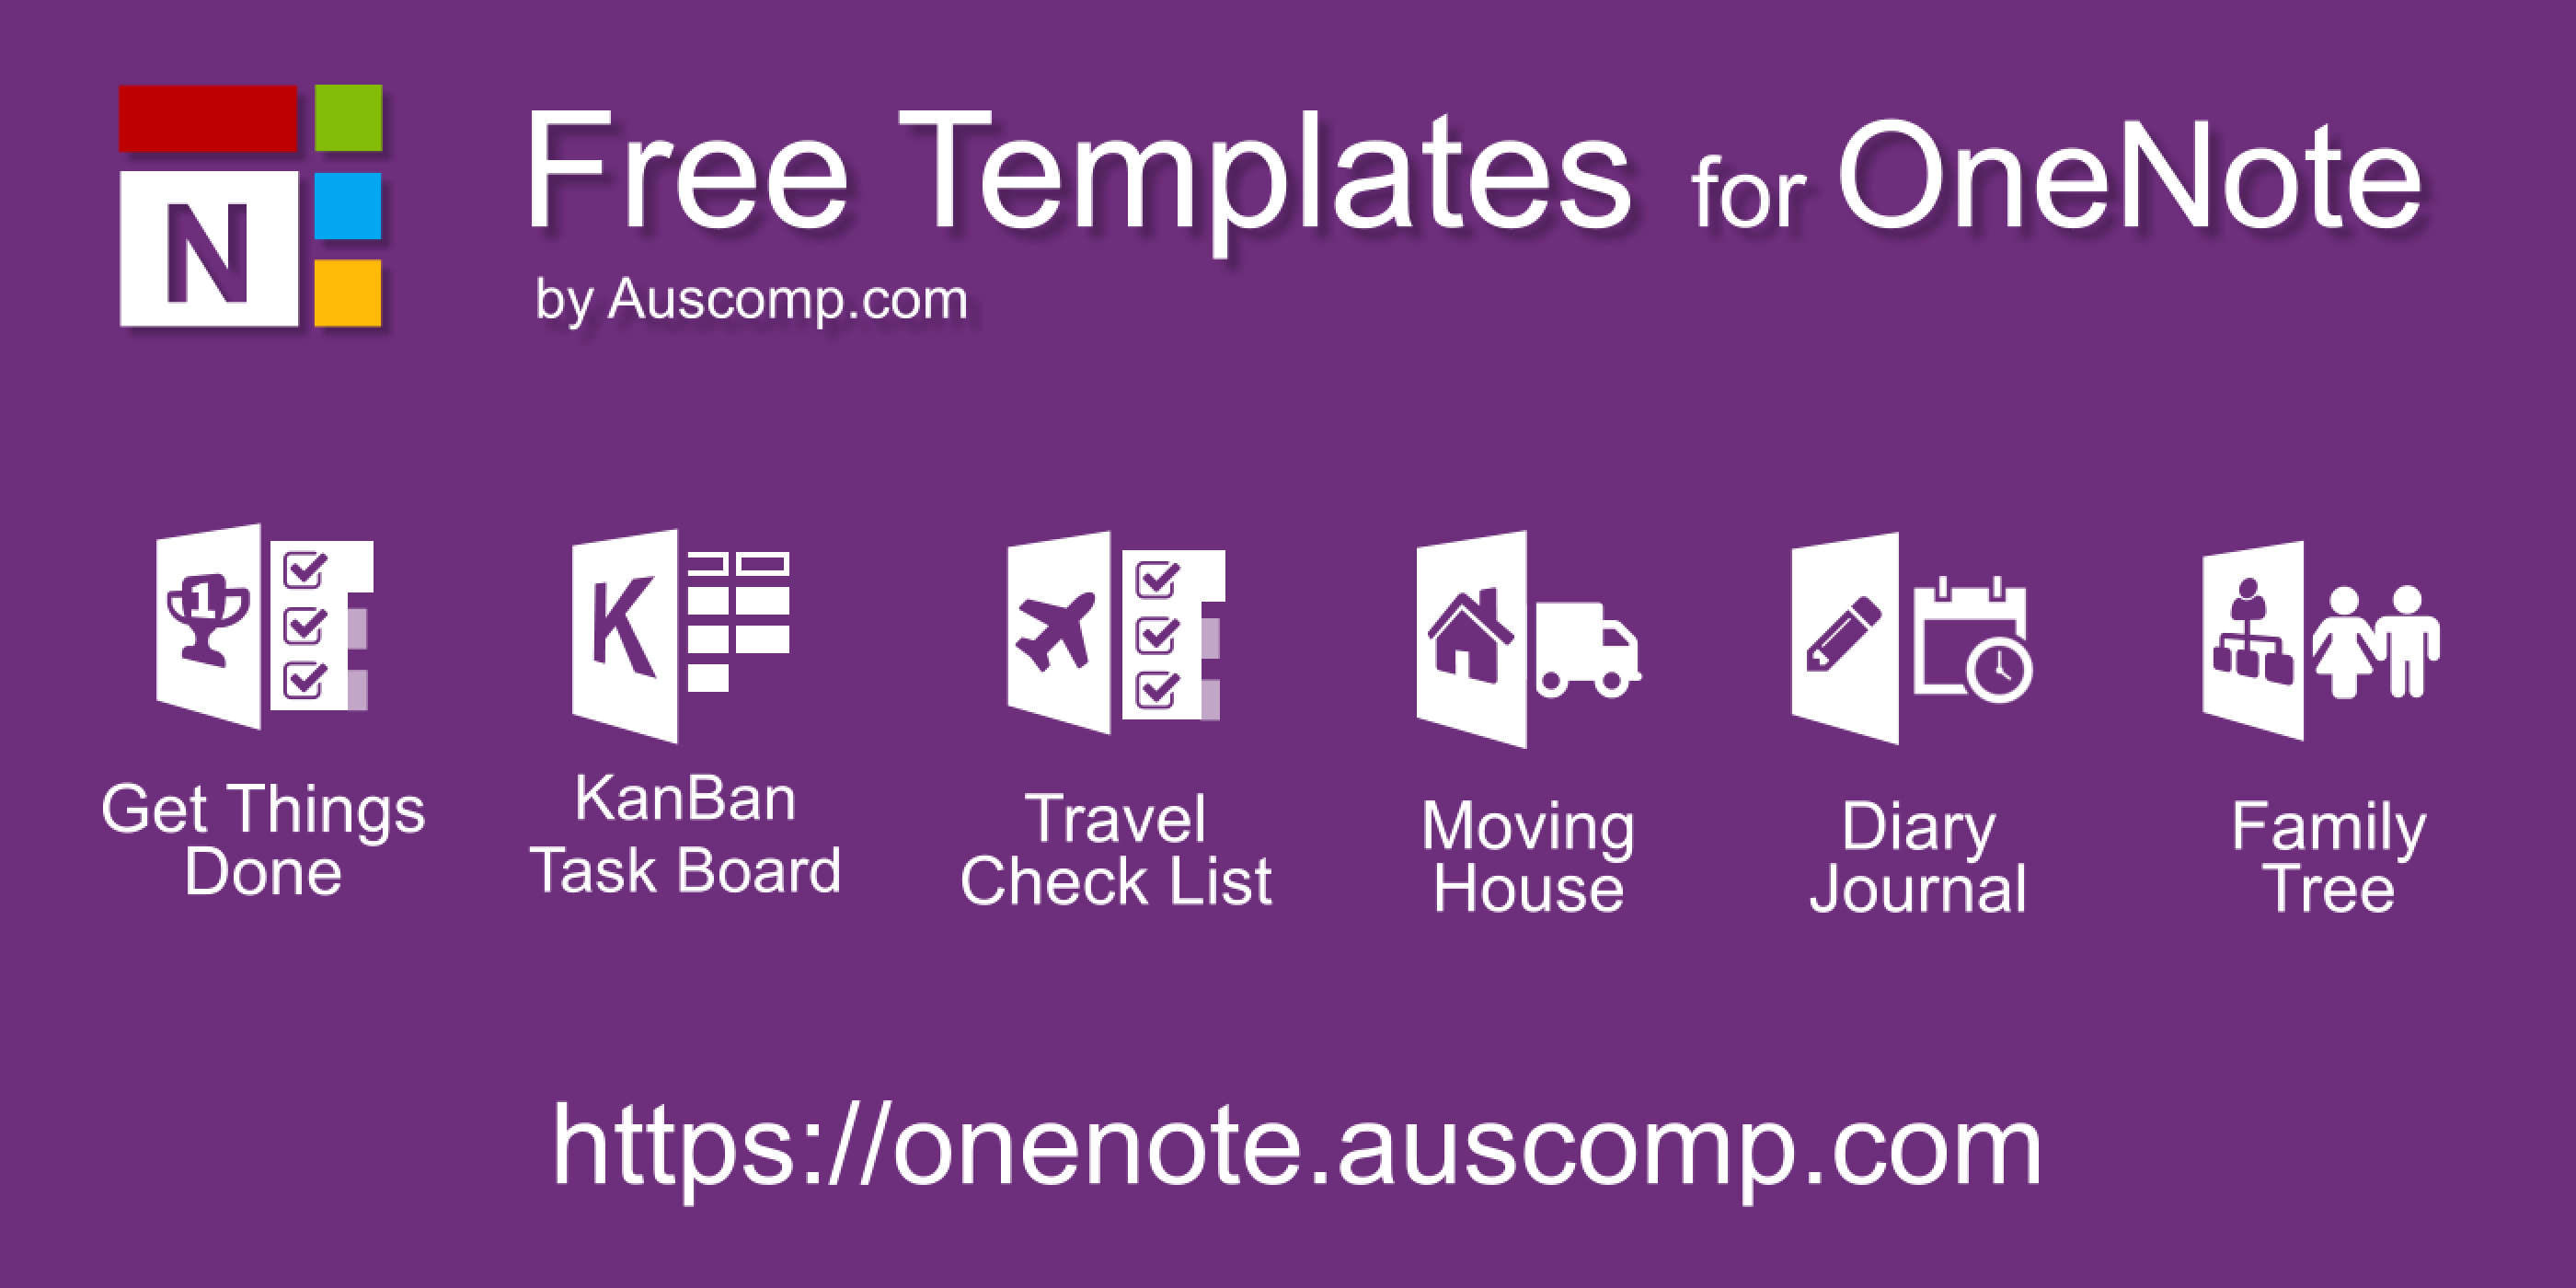 Get Your 180 Worth Of Free Products Gtd Kanban Diary Vault Estateplanner Familytree Travel Office365 Onenote Template One Note Microsoft One Note Tips